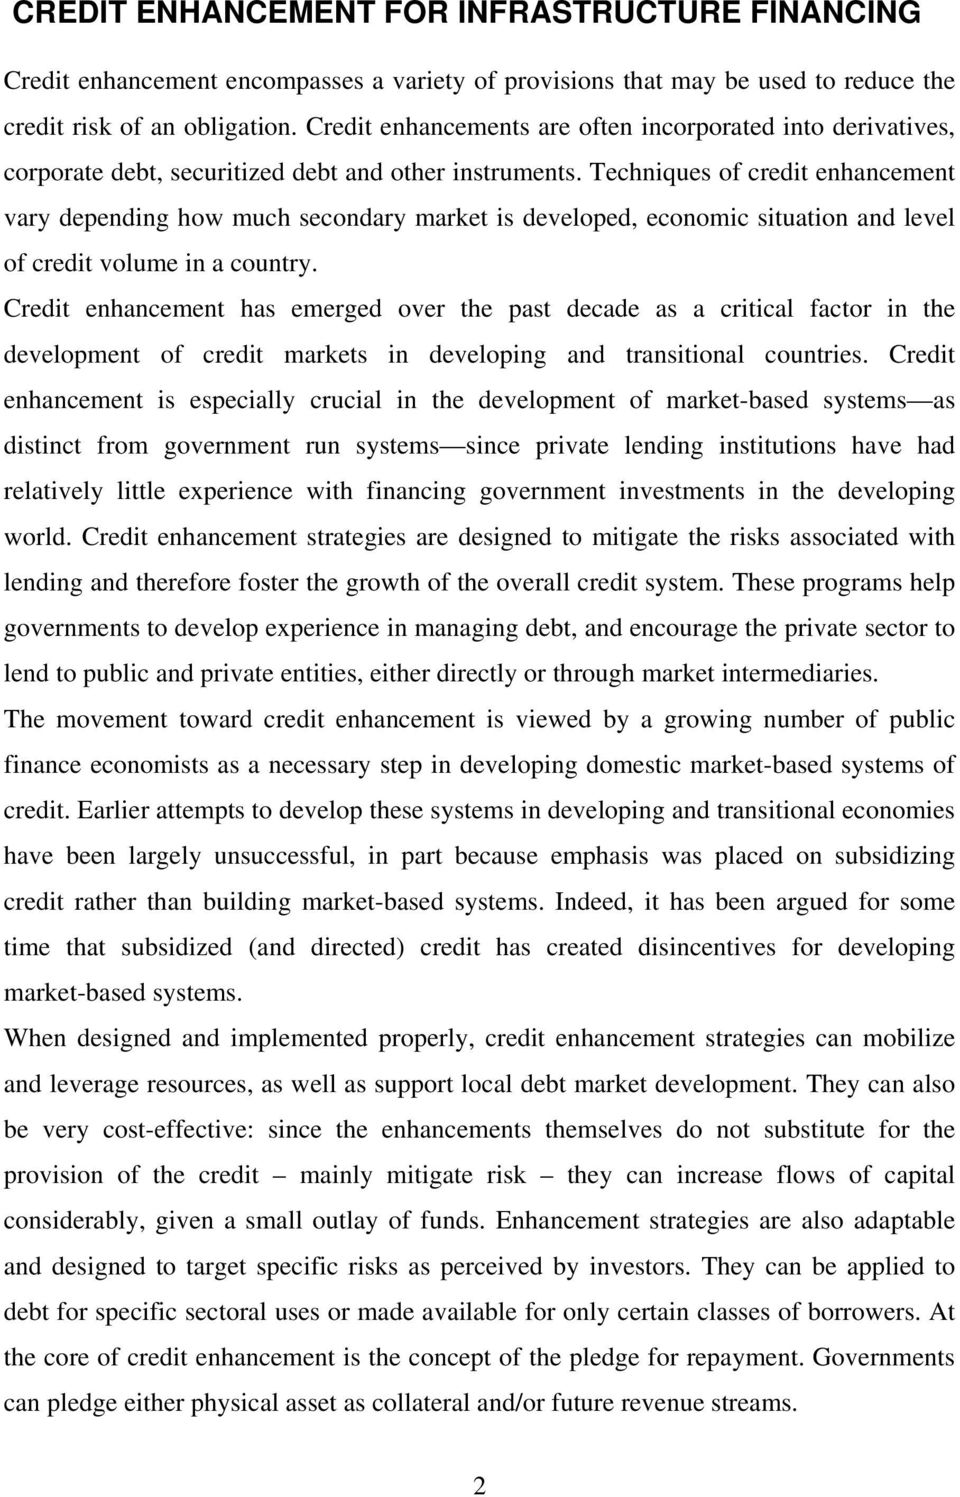 Techniques of credit enhancement vary depending how much secondary market is developed, economic situation and level of credit volume in a country.